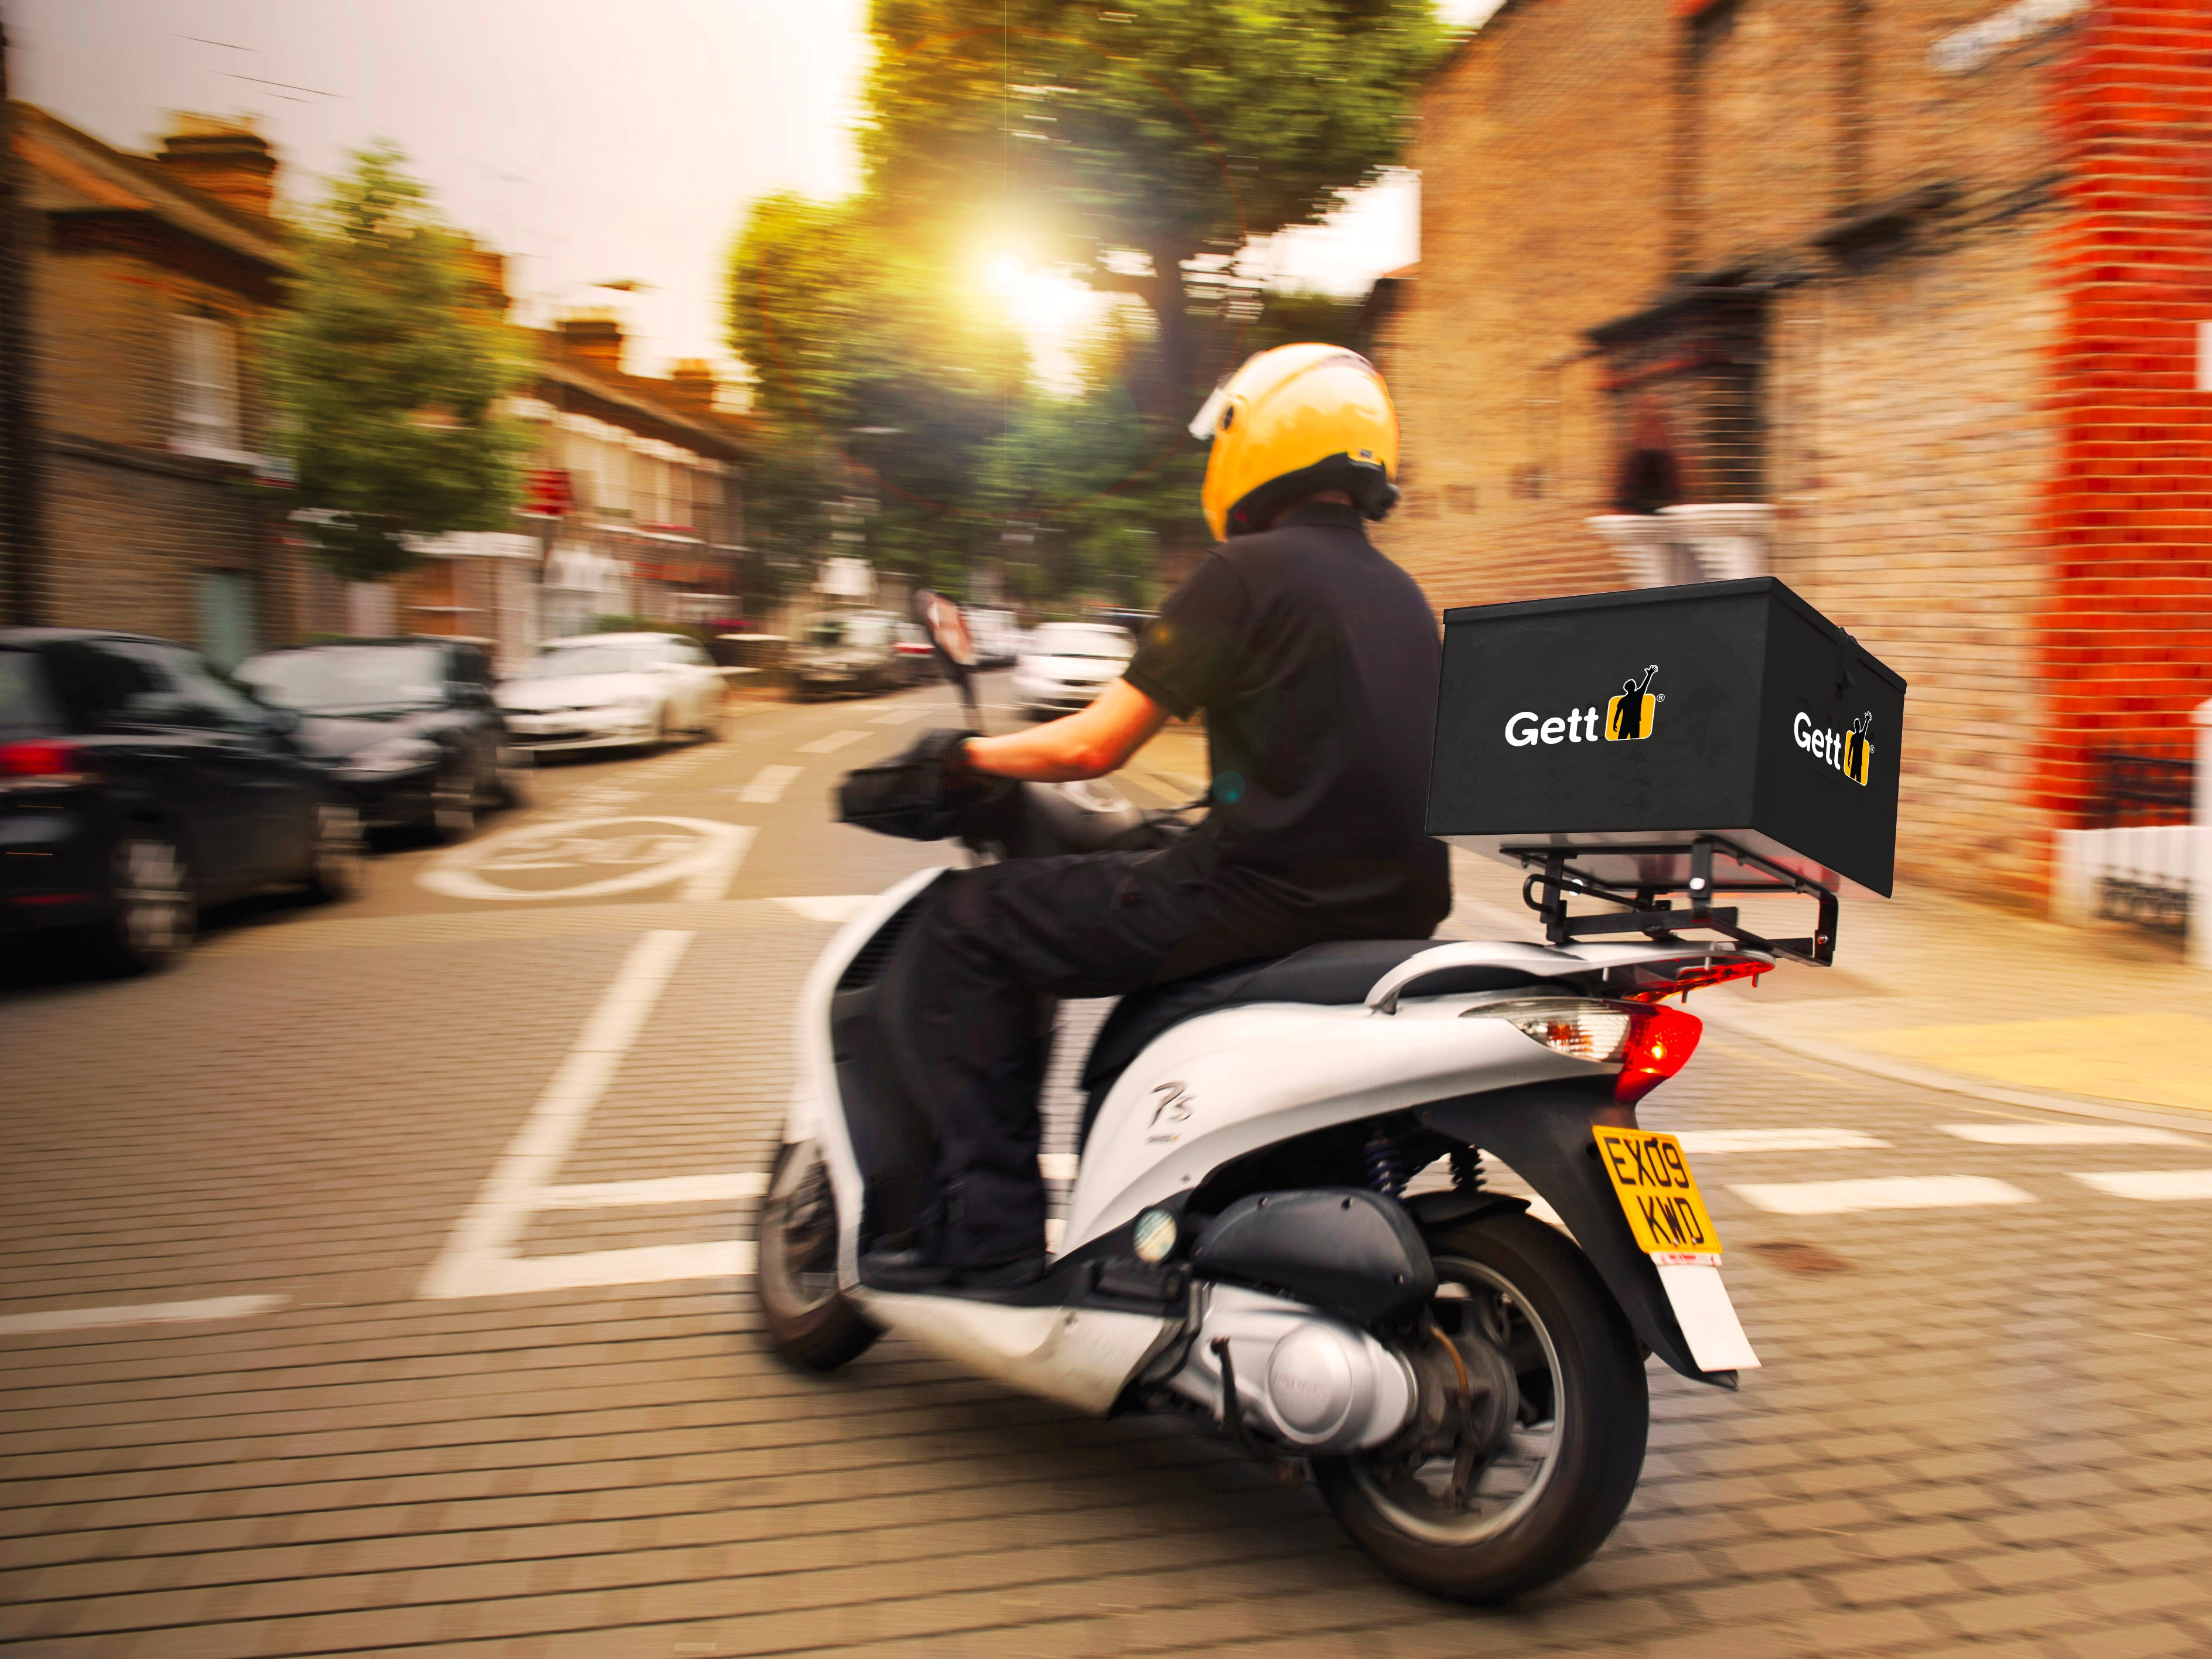 Gett Taxi App Launches £6 Courier Service